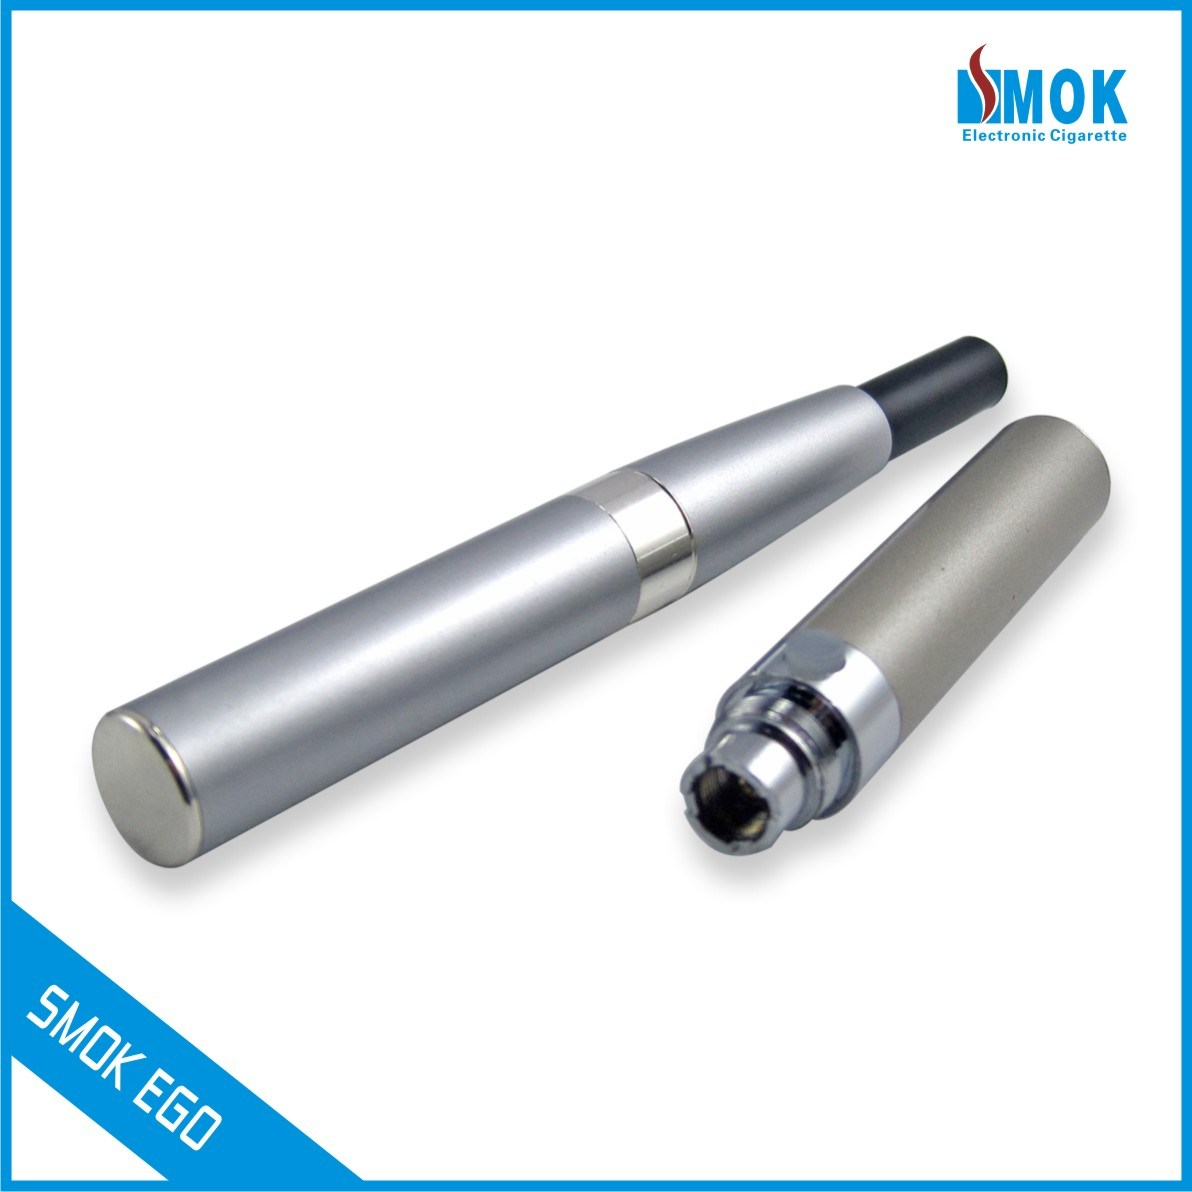 Electronic cigarette buy now